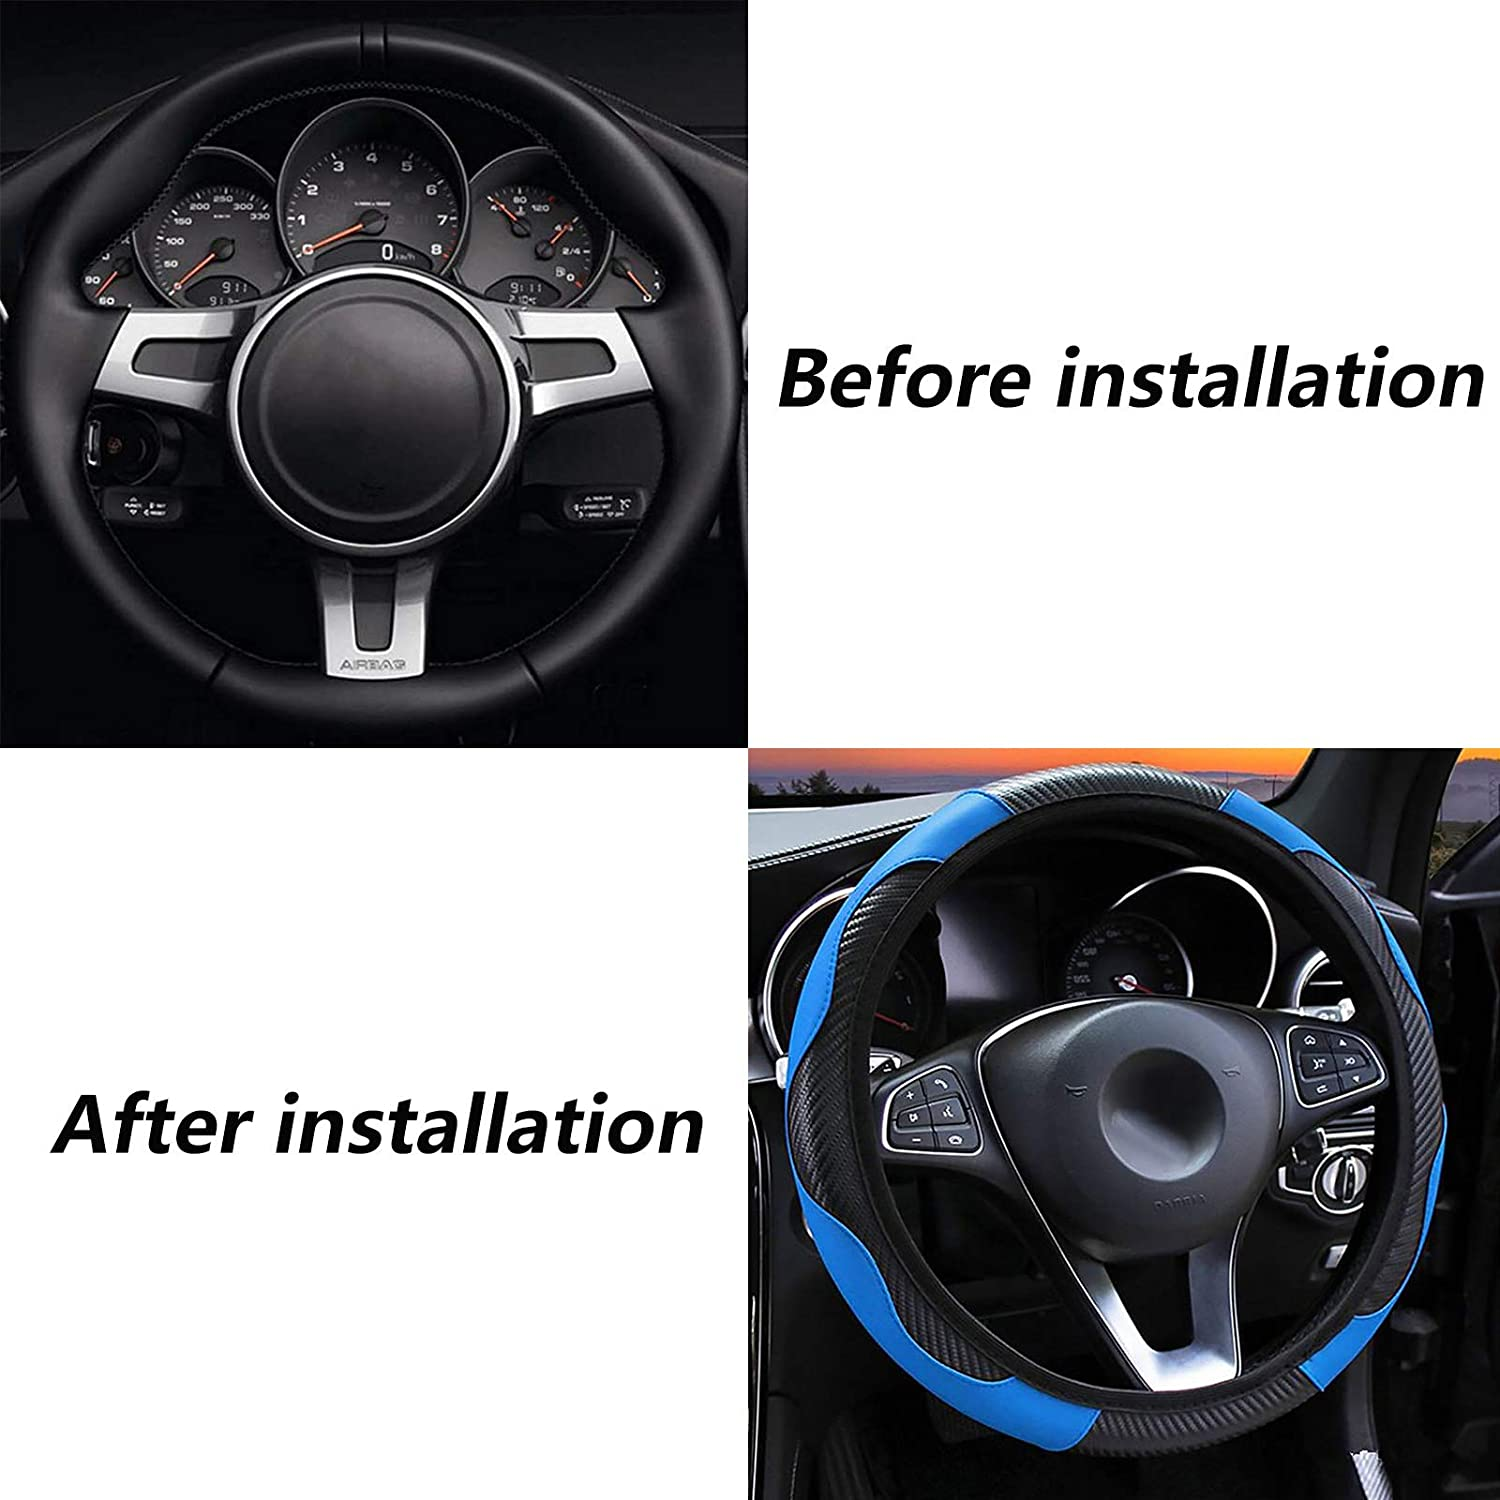 Black Carbon Fiber Sports Elastic Band Without Inner Ring Wheel Cover panthem Car Steering Wheel Cover Universal Size 37-39cm Leather Breathable Anti-Slip